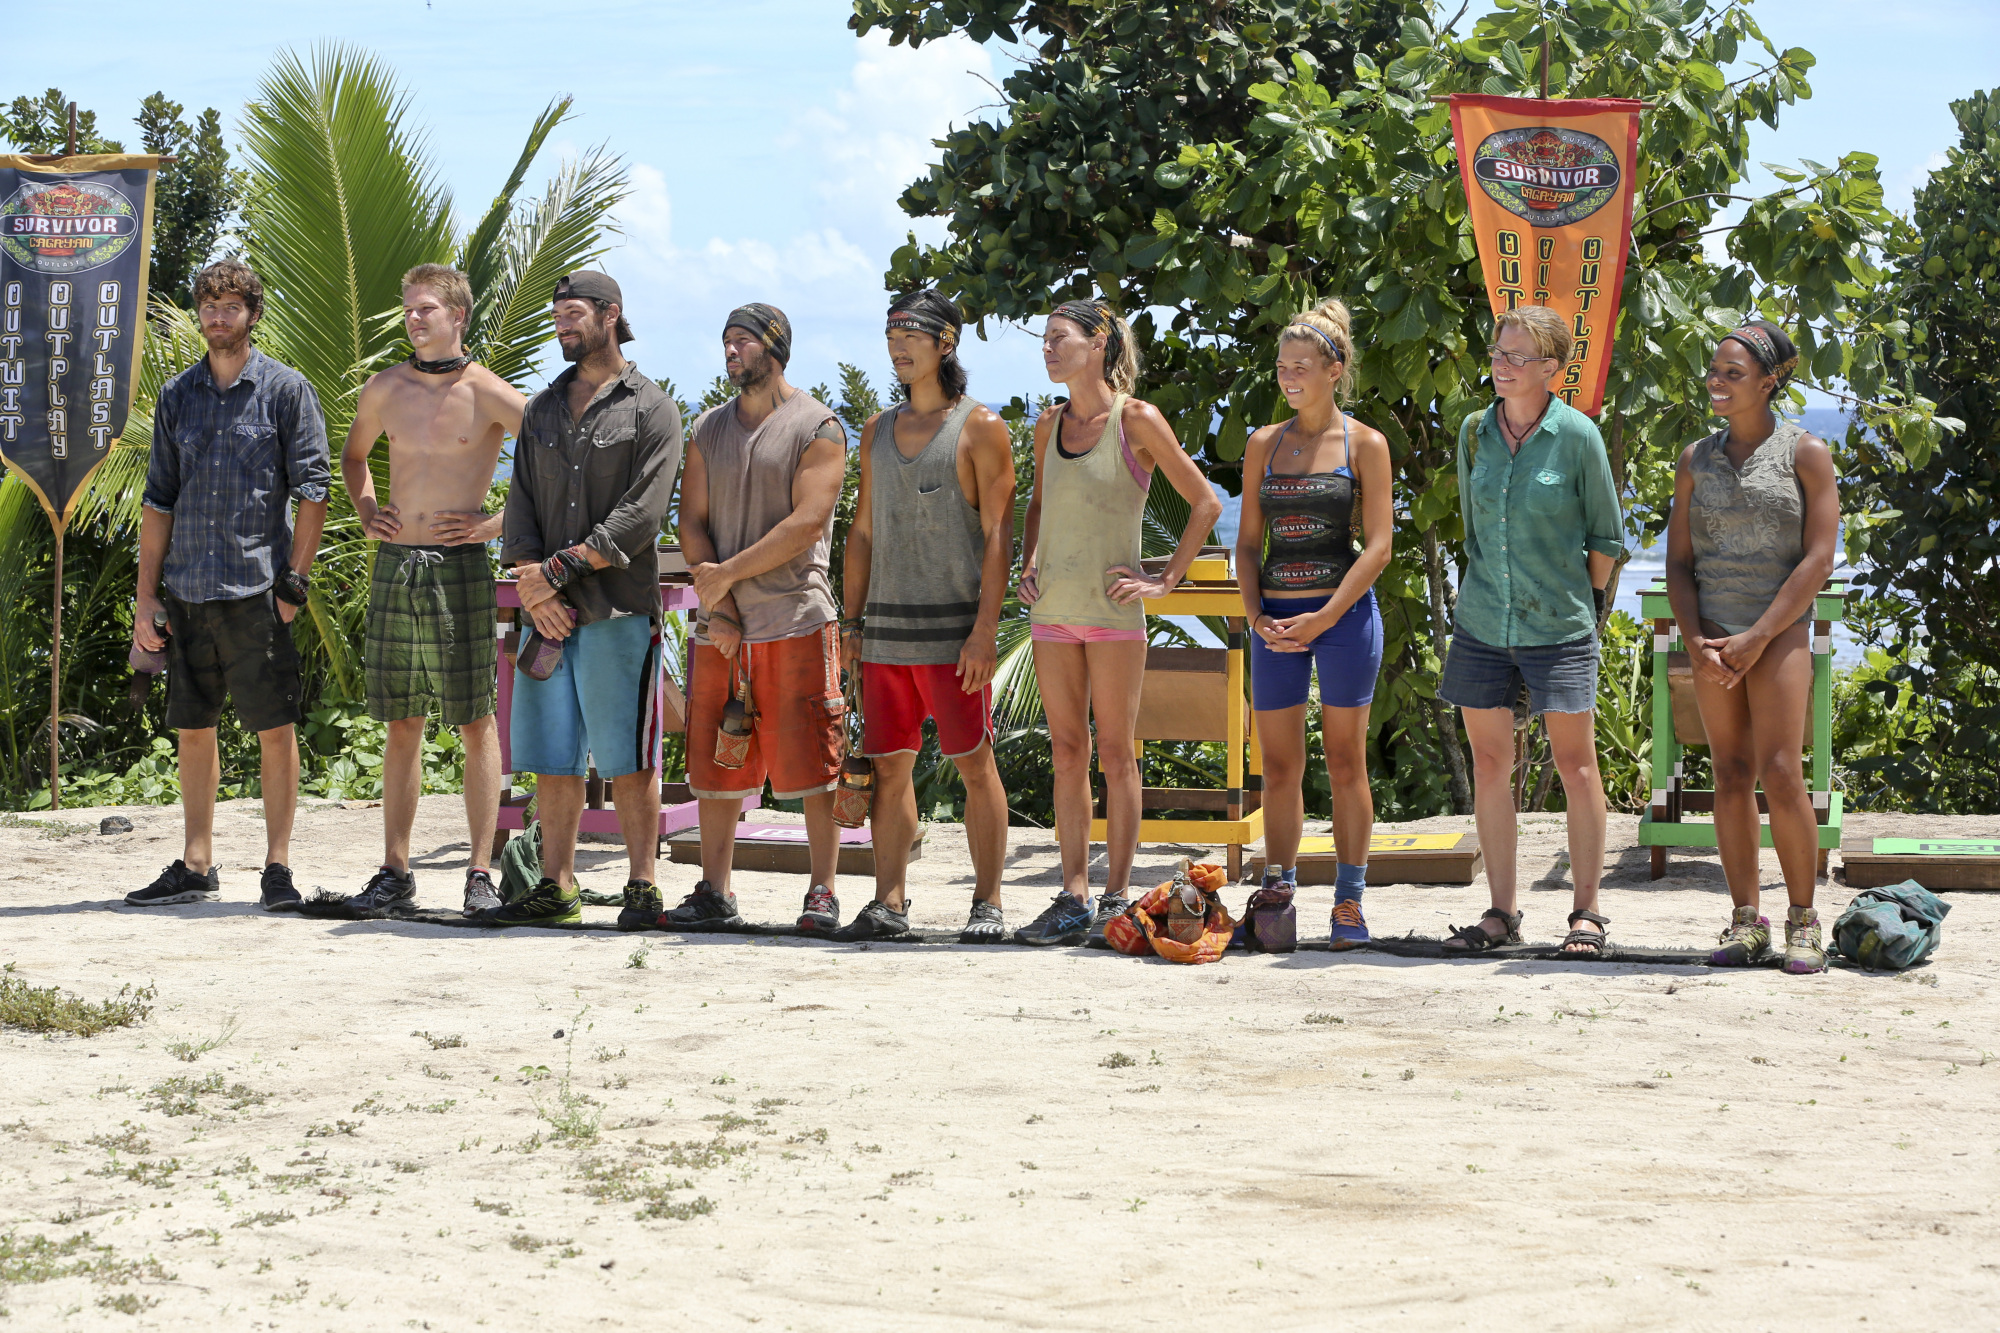 Solarrion Tribe in Season 28 Episode 8